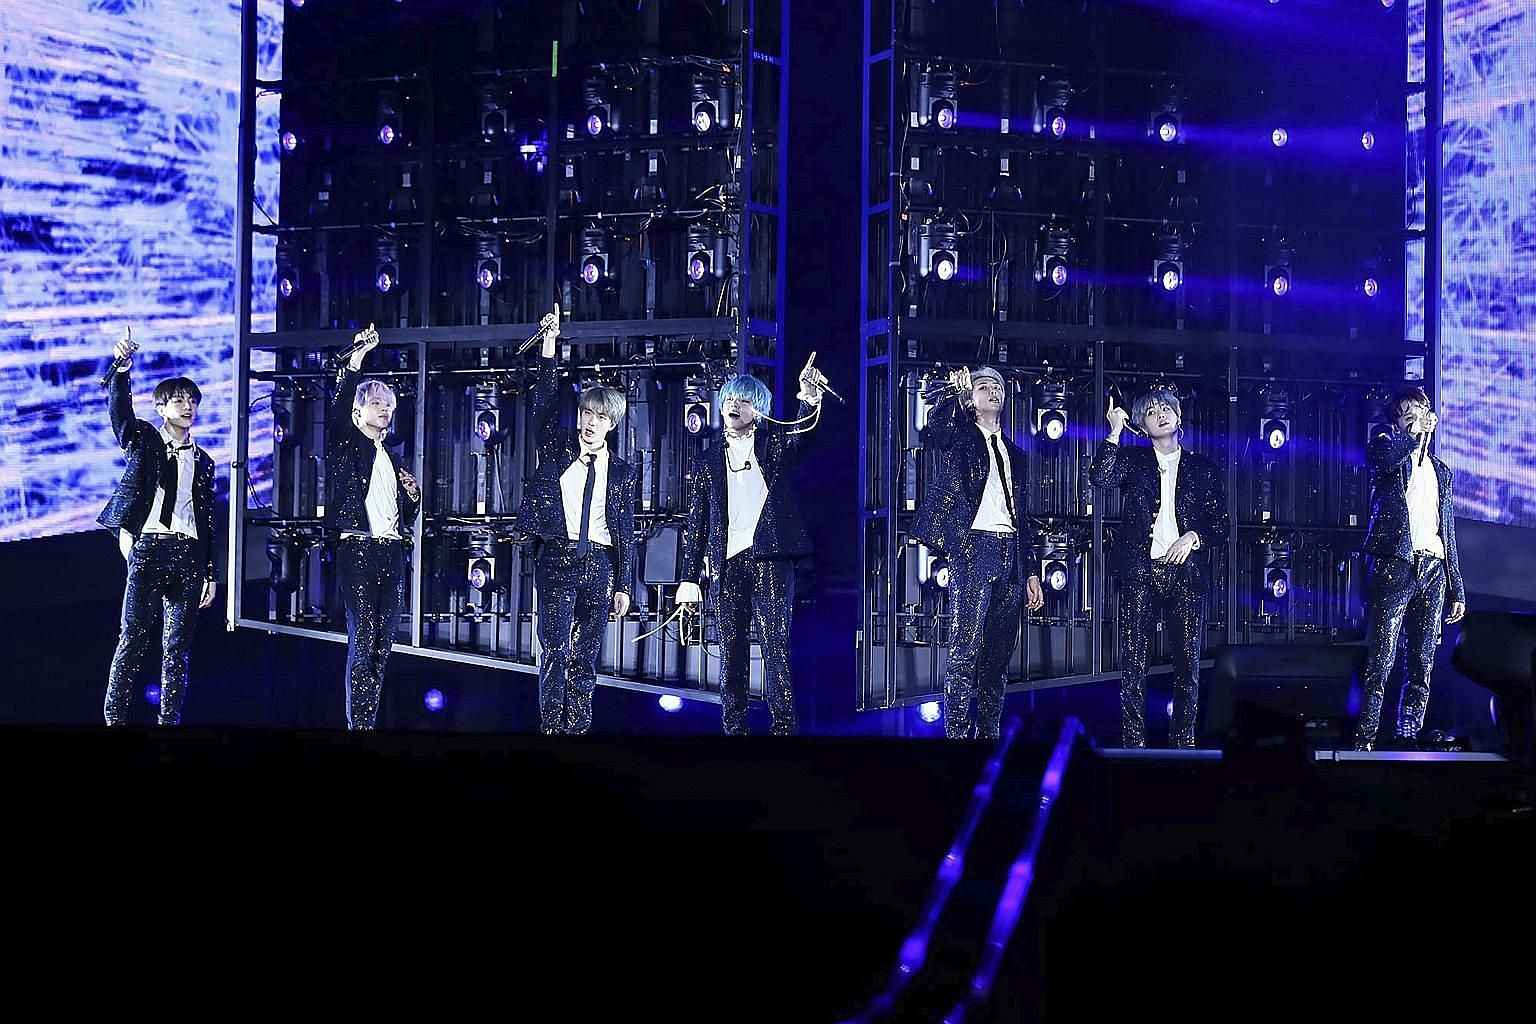 Fans were thoroughly entertained by South Korean boyband BTS, which comprise (from far left) Jungkook, Jimin, Jin, V, RM, Suga and J-Hope.